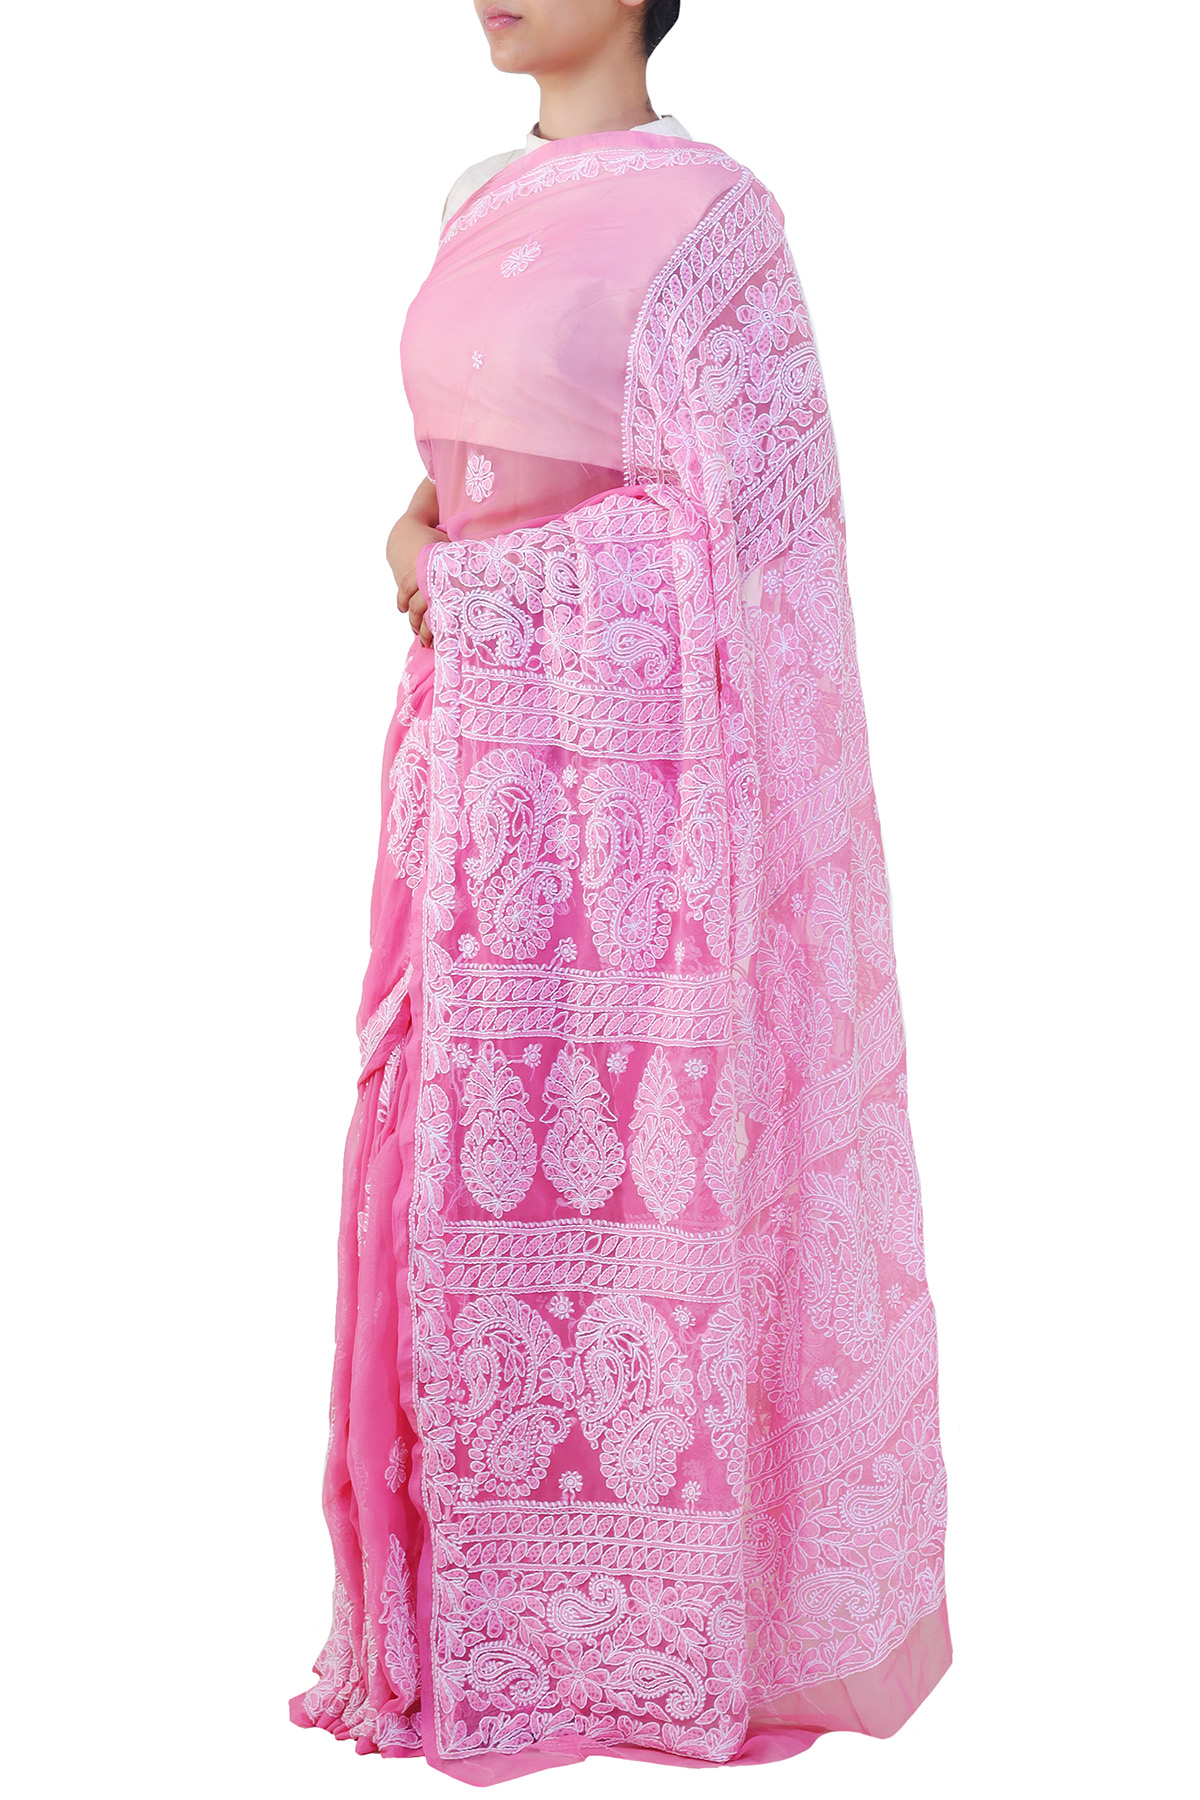 Onion Color Hand Embroidered Chadhi Work Lucknowi Chikankari Saree (With Blouse - Georgette) KC250674